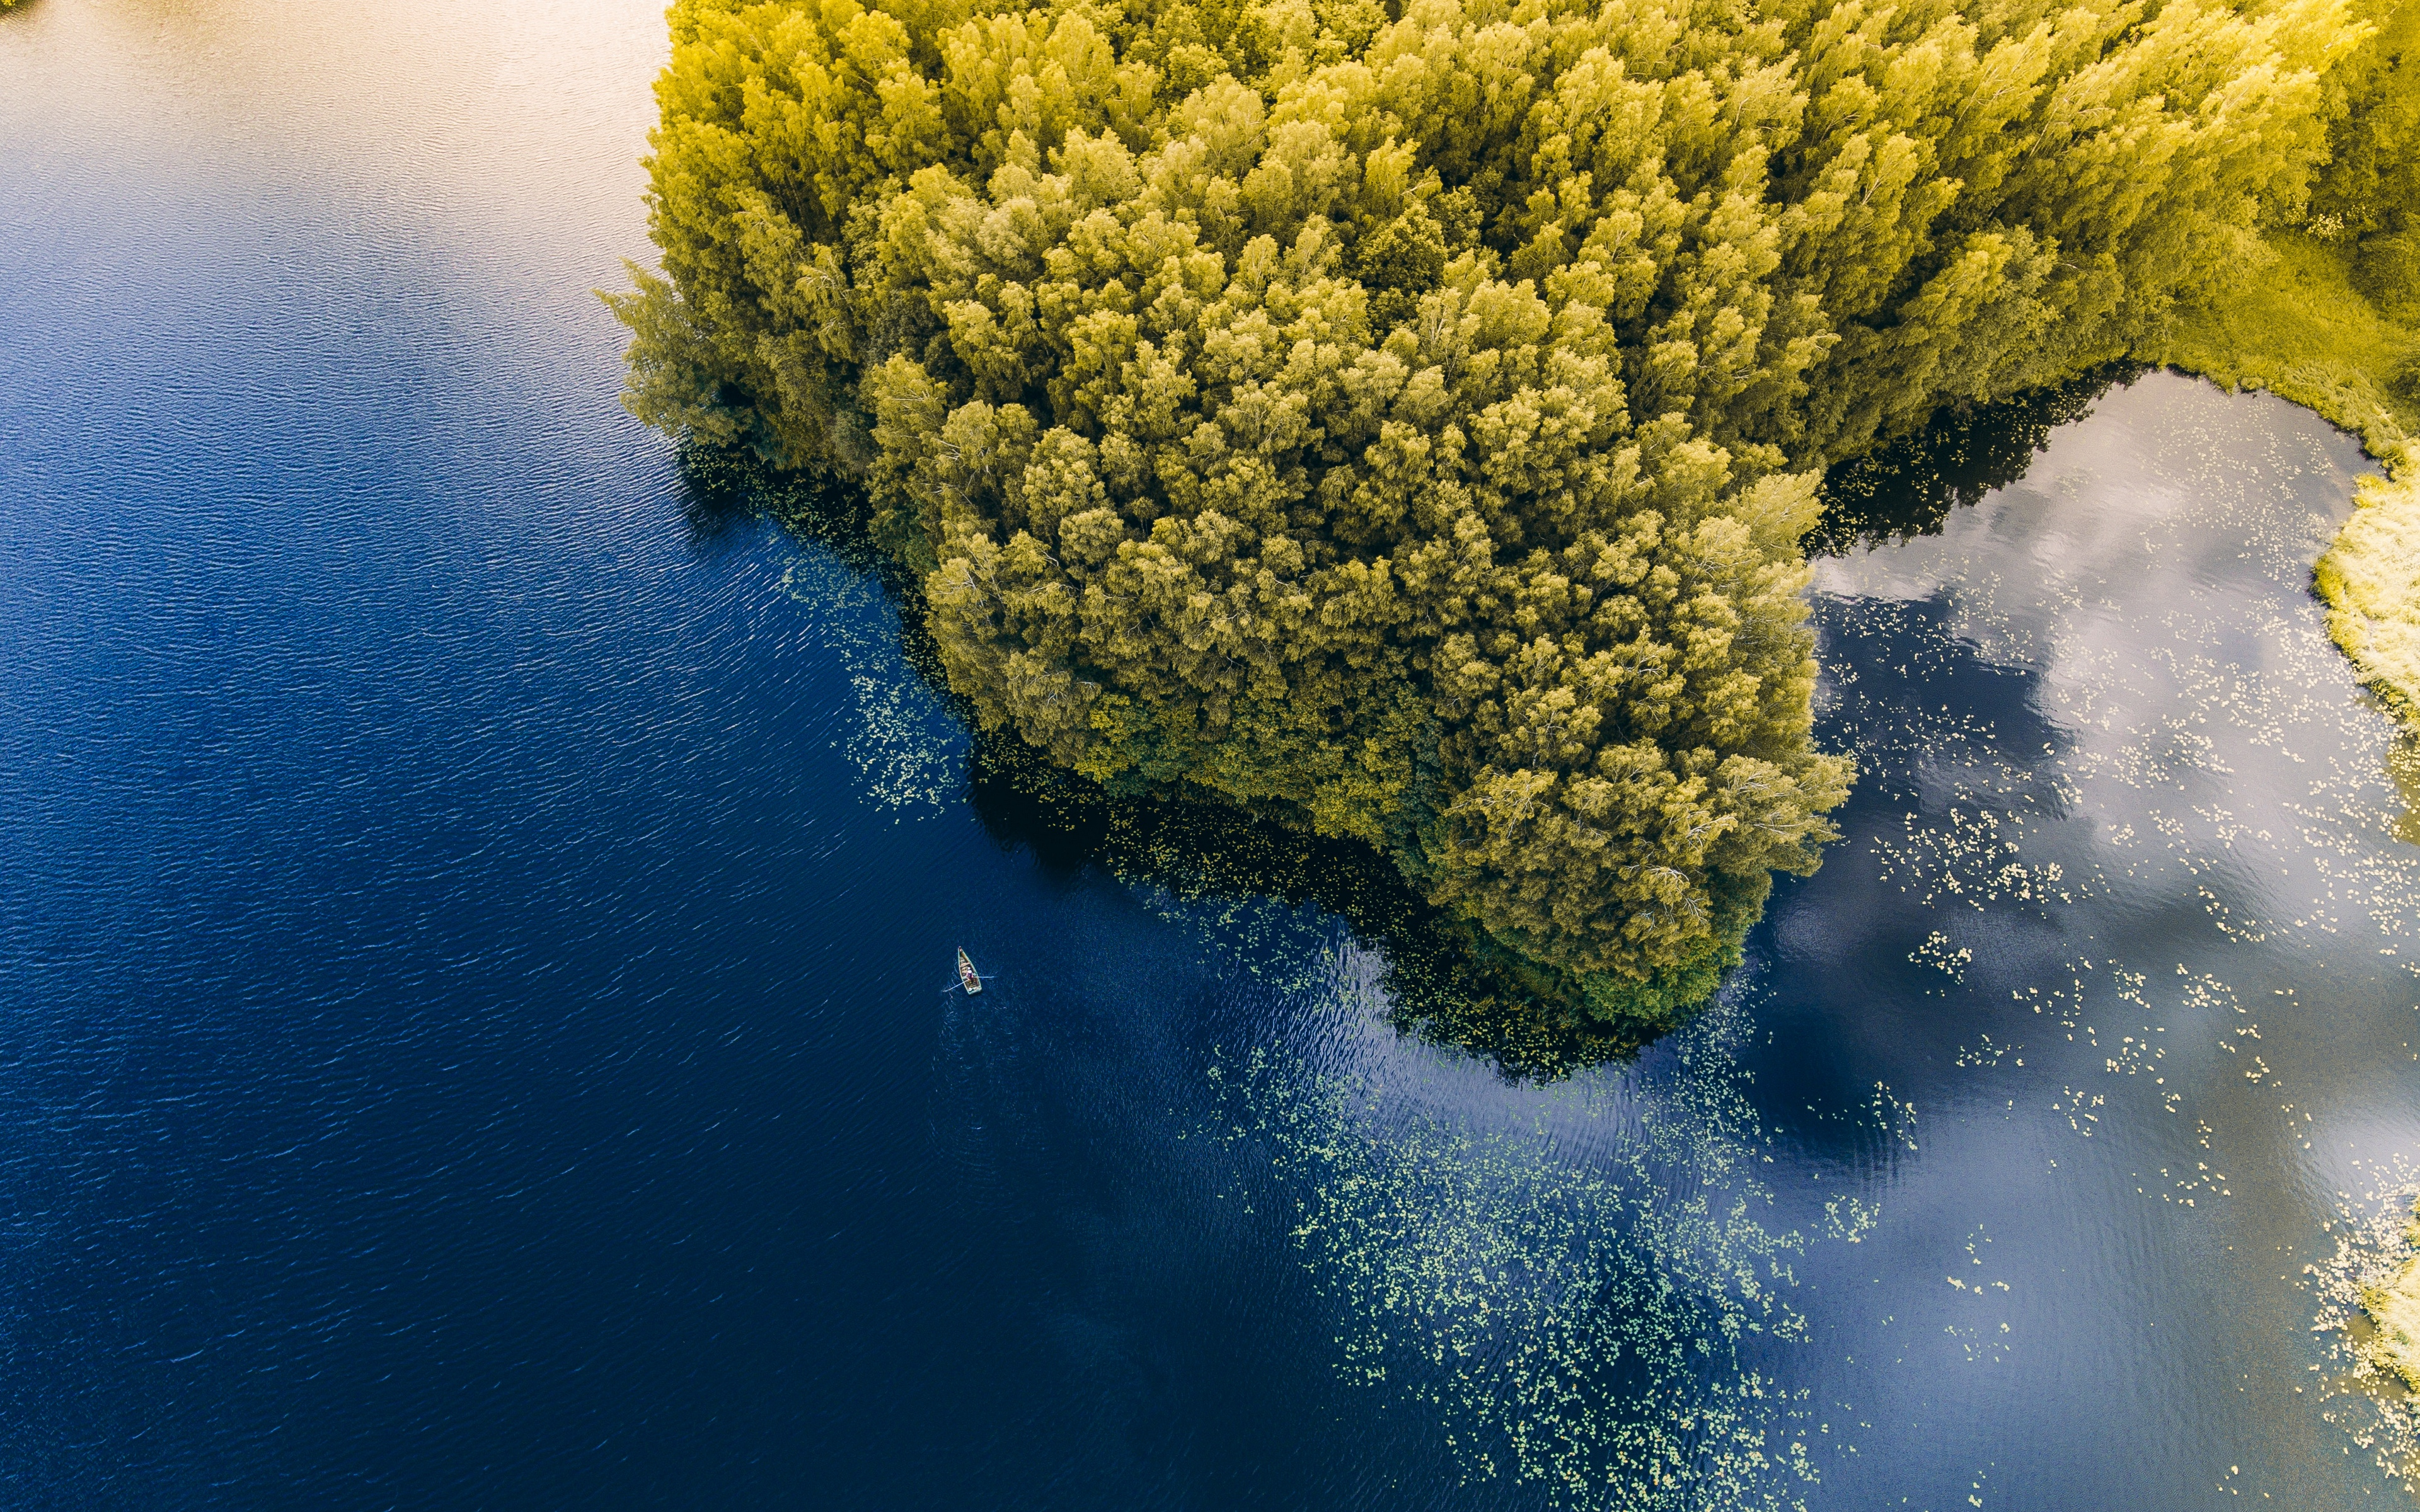 Wallpaper Sea Boat Aerial View Trees Lithuania Nature Aerial View 3840x2400 Download Hd Wallpaper Wallpapertip